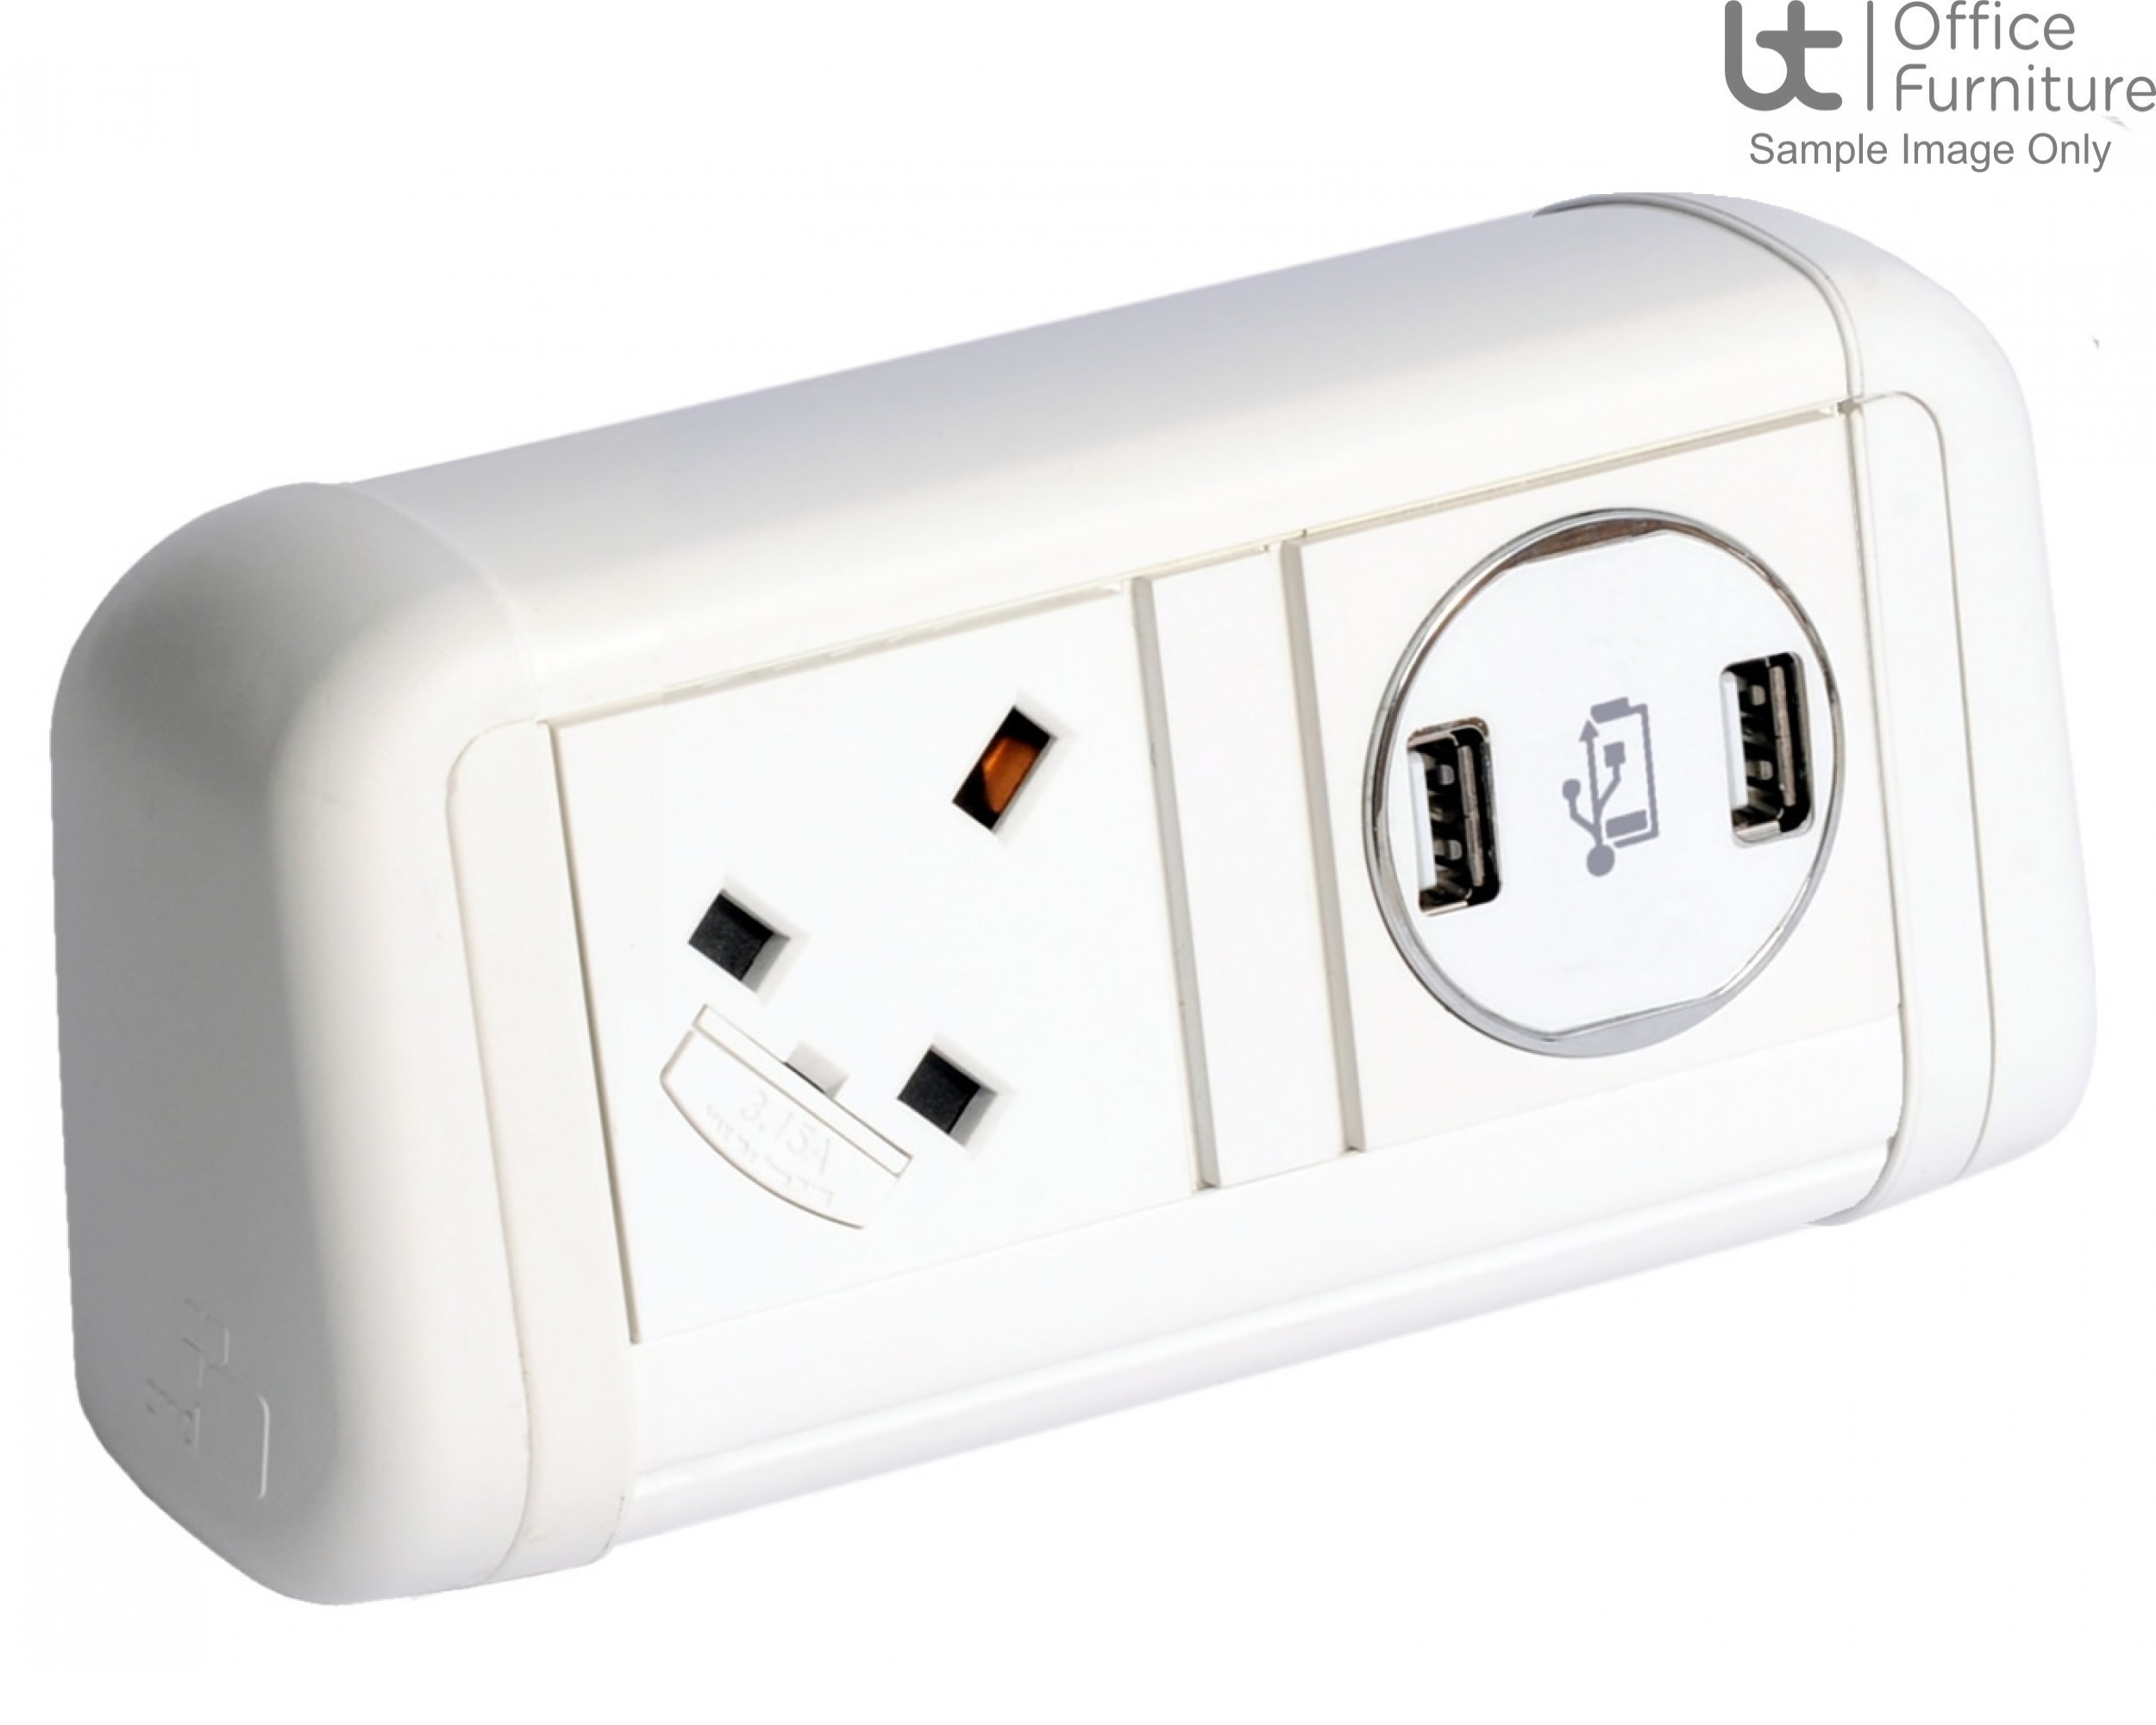 DMC Contour 1 x power, 1 x twin 5A USB charger, 1m mains lead to 3-pole connector